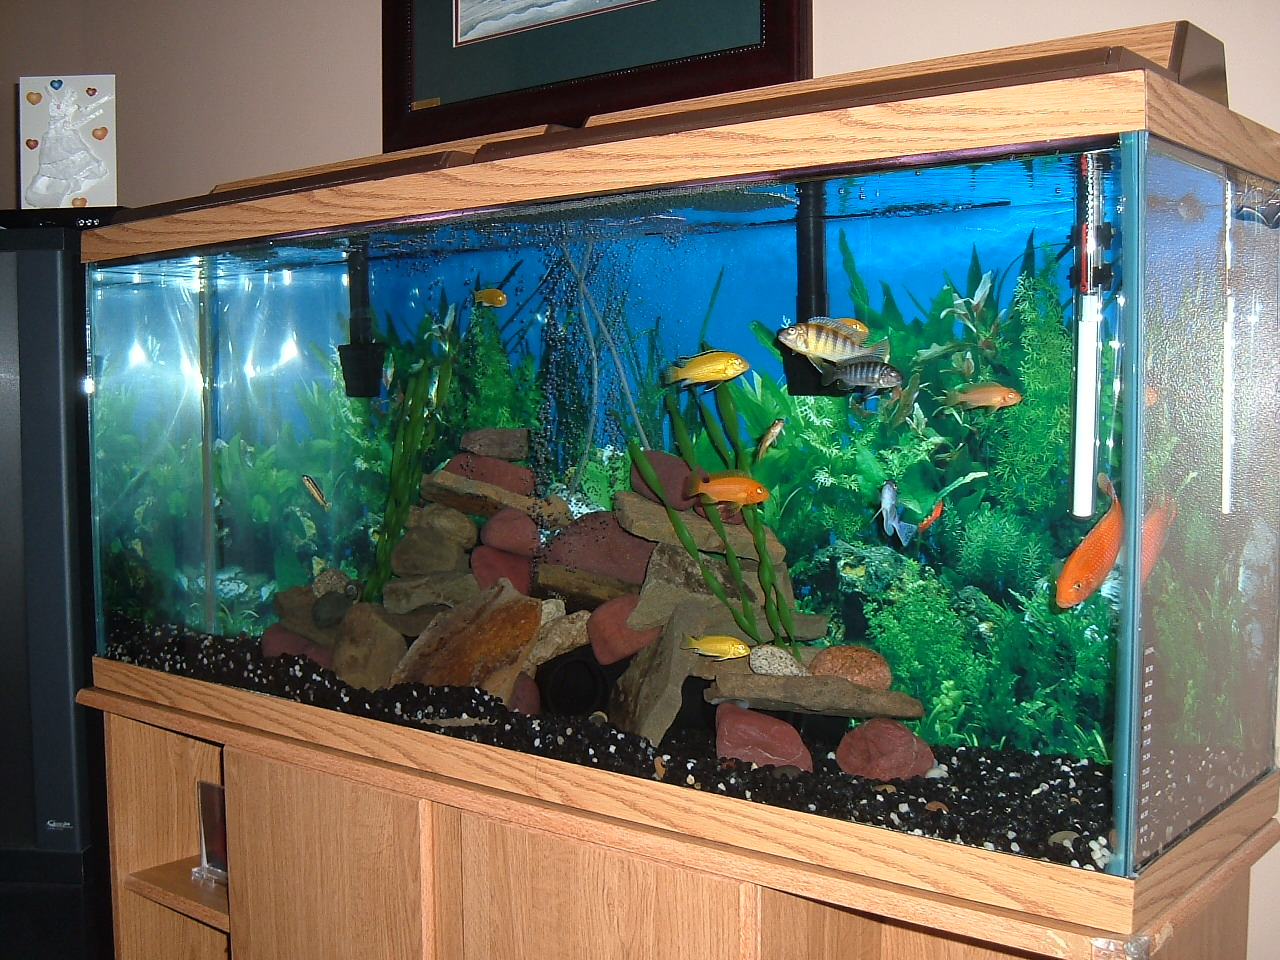 55 gallon fish tank gravel 55 gallon fish tank aquarium for 55 gallon aquarium decoration ideas